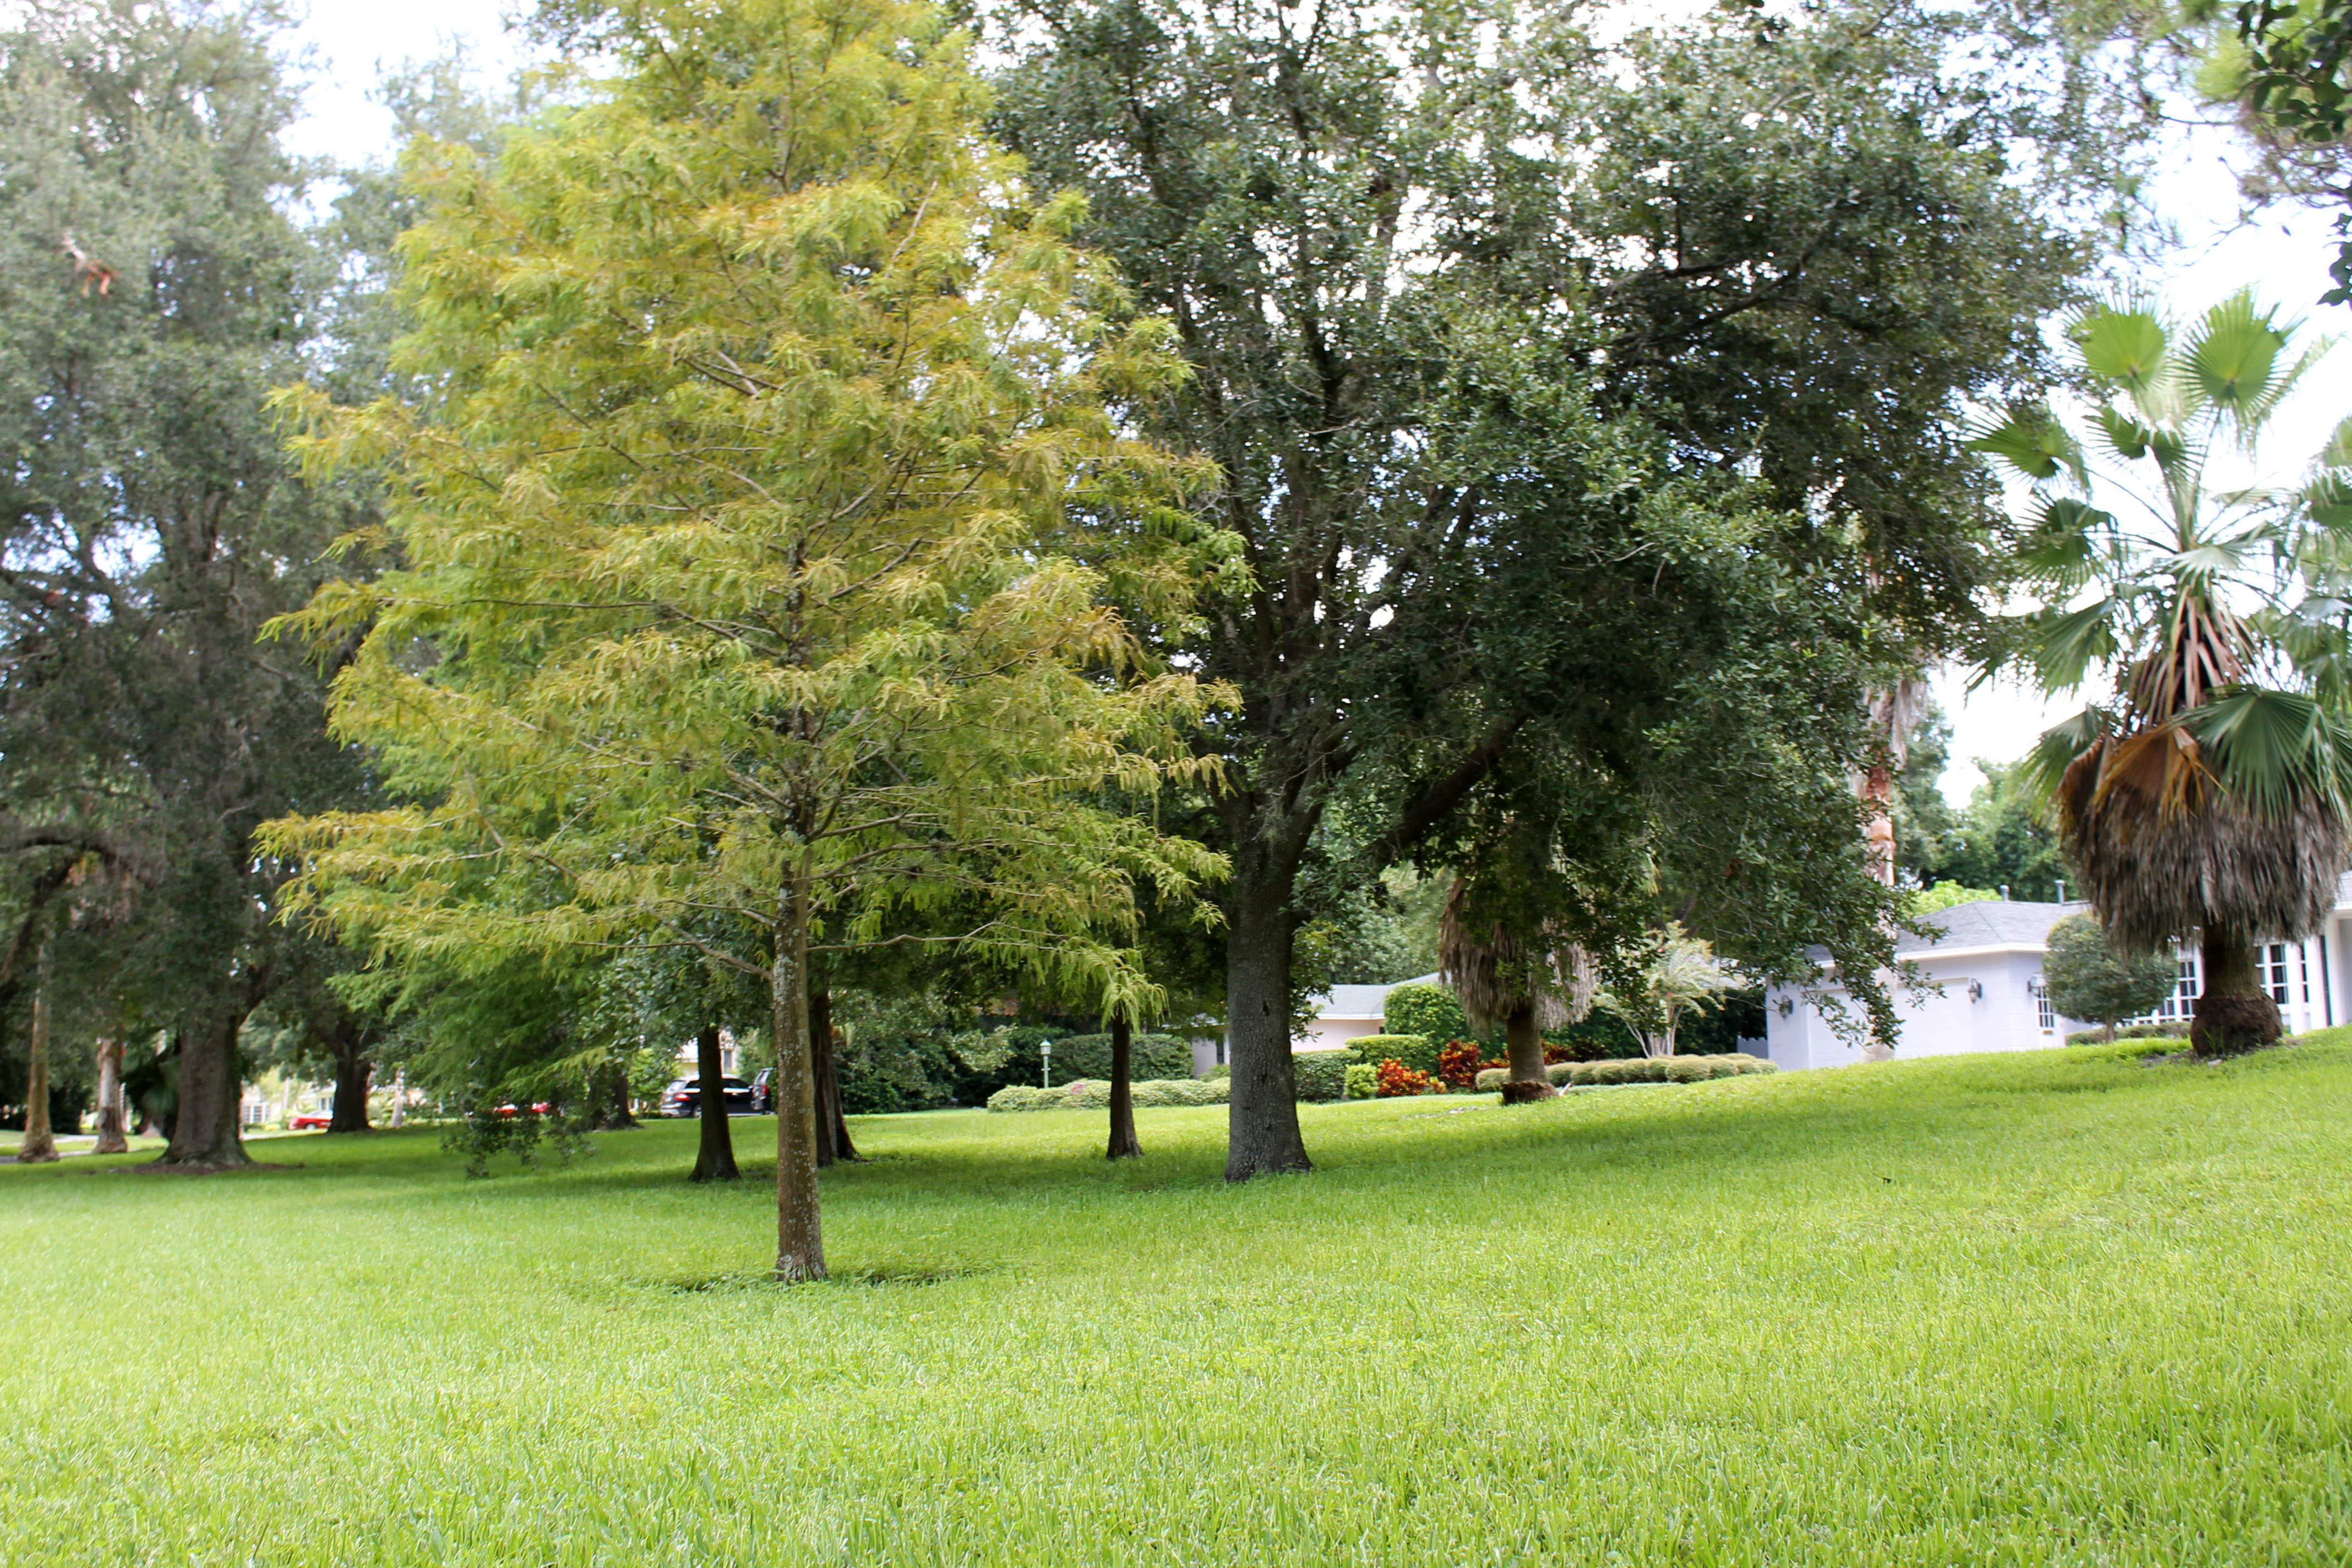 An open green space in Gaienne Park with trees scattered throughout